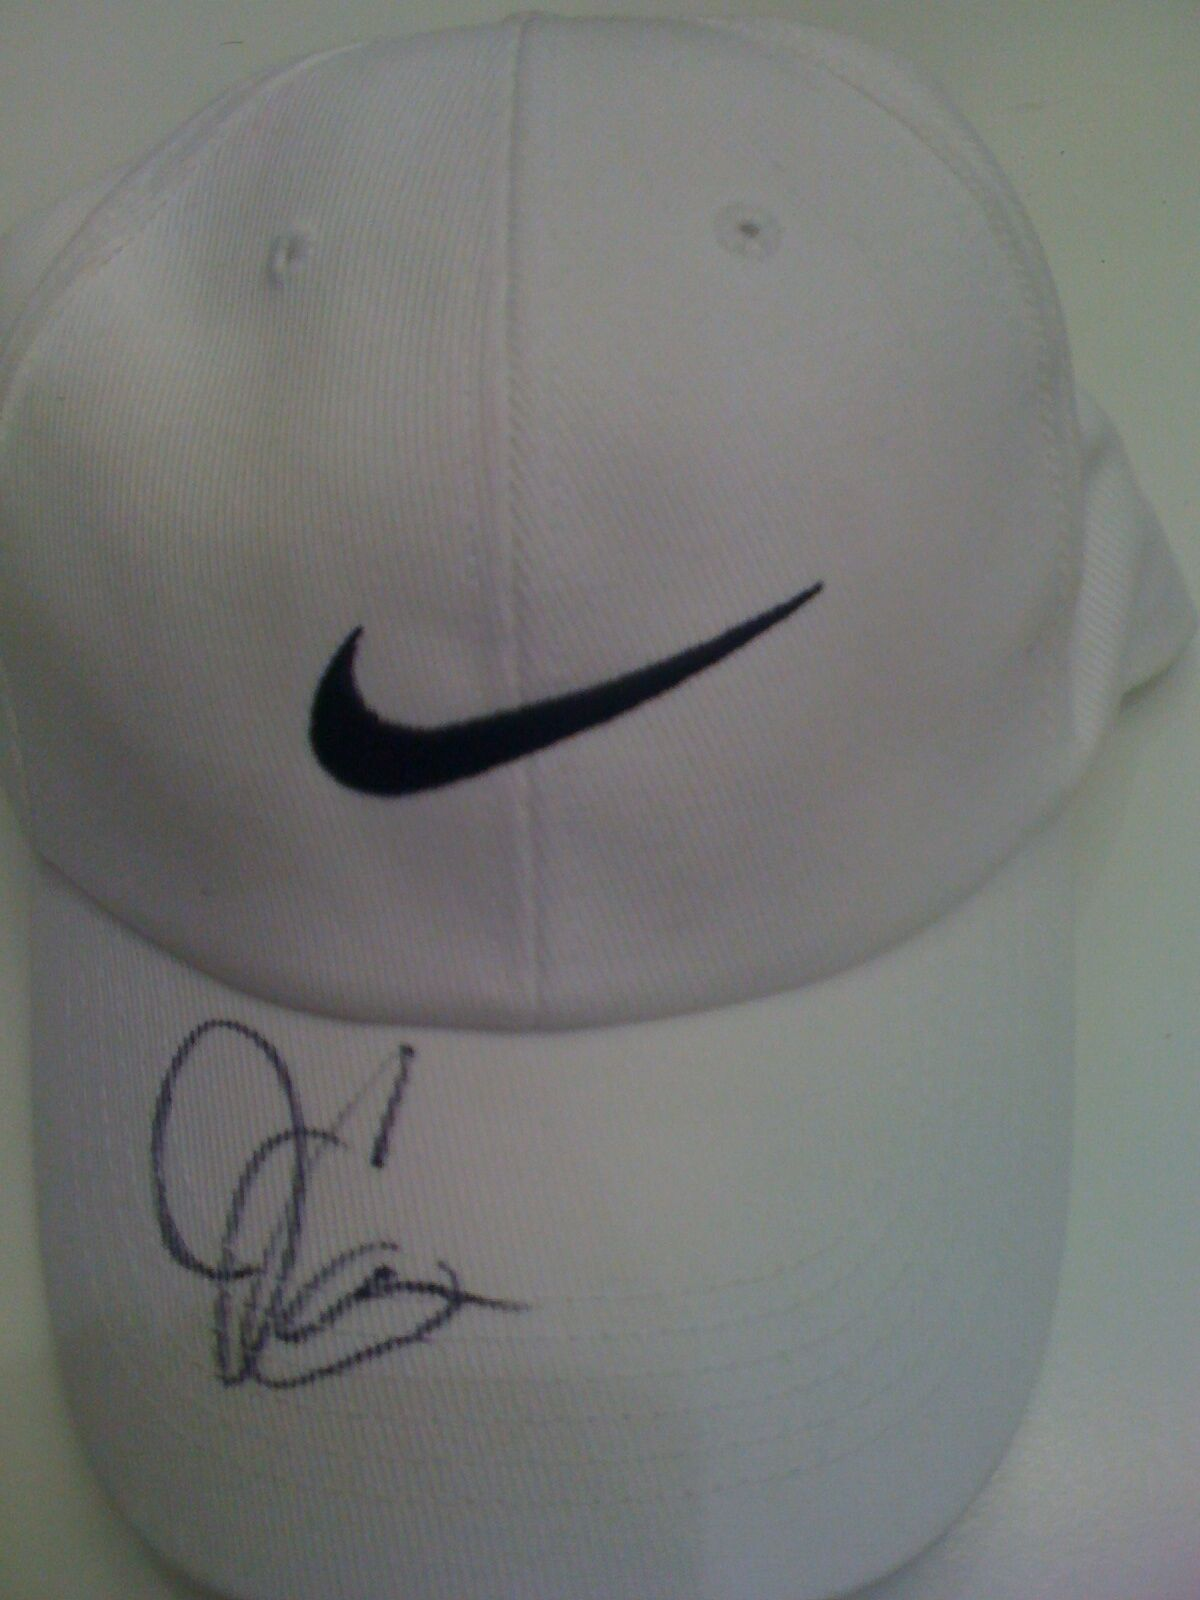 JIM COURIER HAND SIGNED NIKE CAP UNFRAMED + PHOTO PROOF & C.O.A